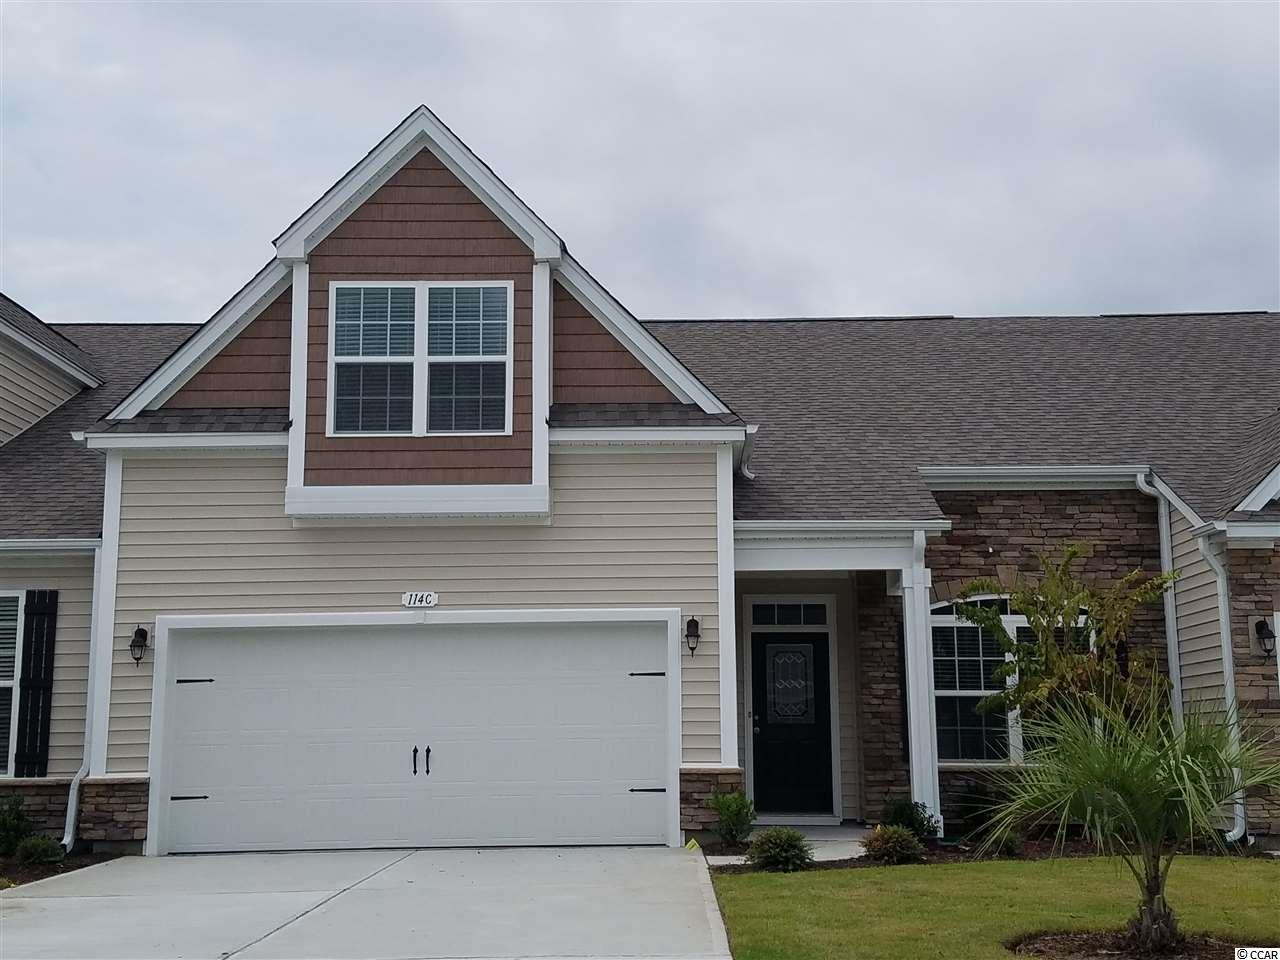 MLS#:1702356 Townhouse 114C Parmelee Drive